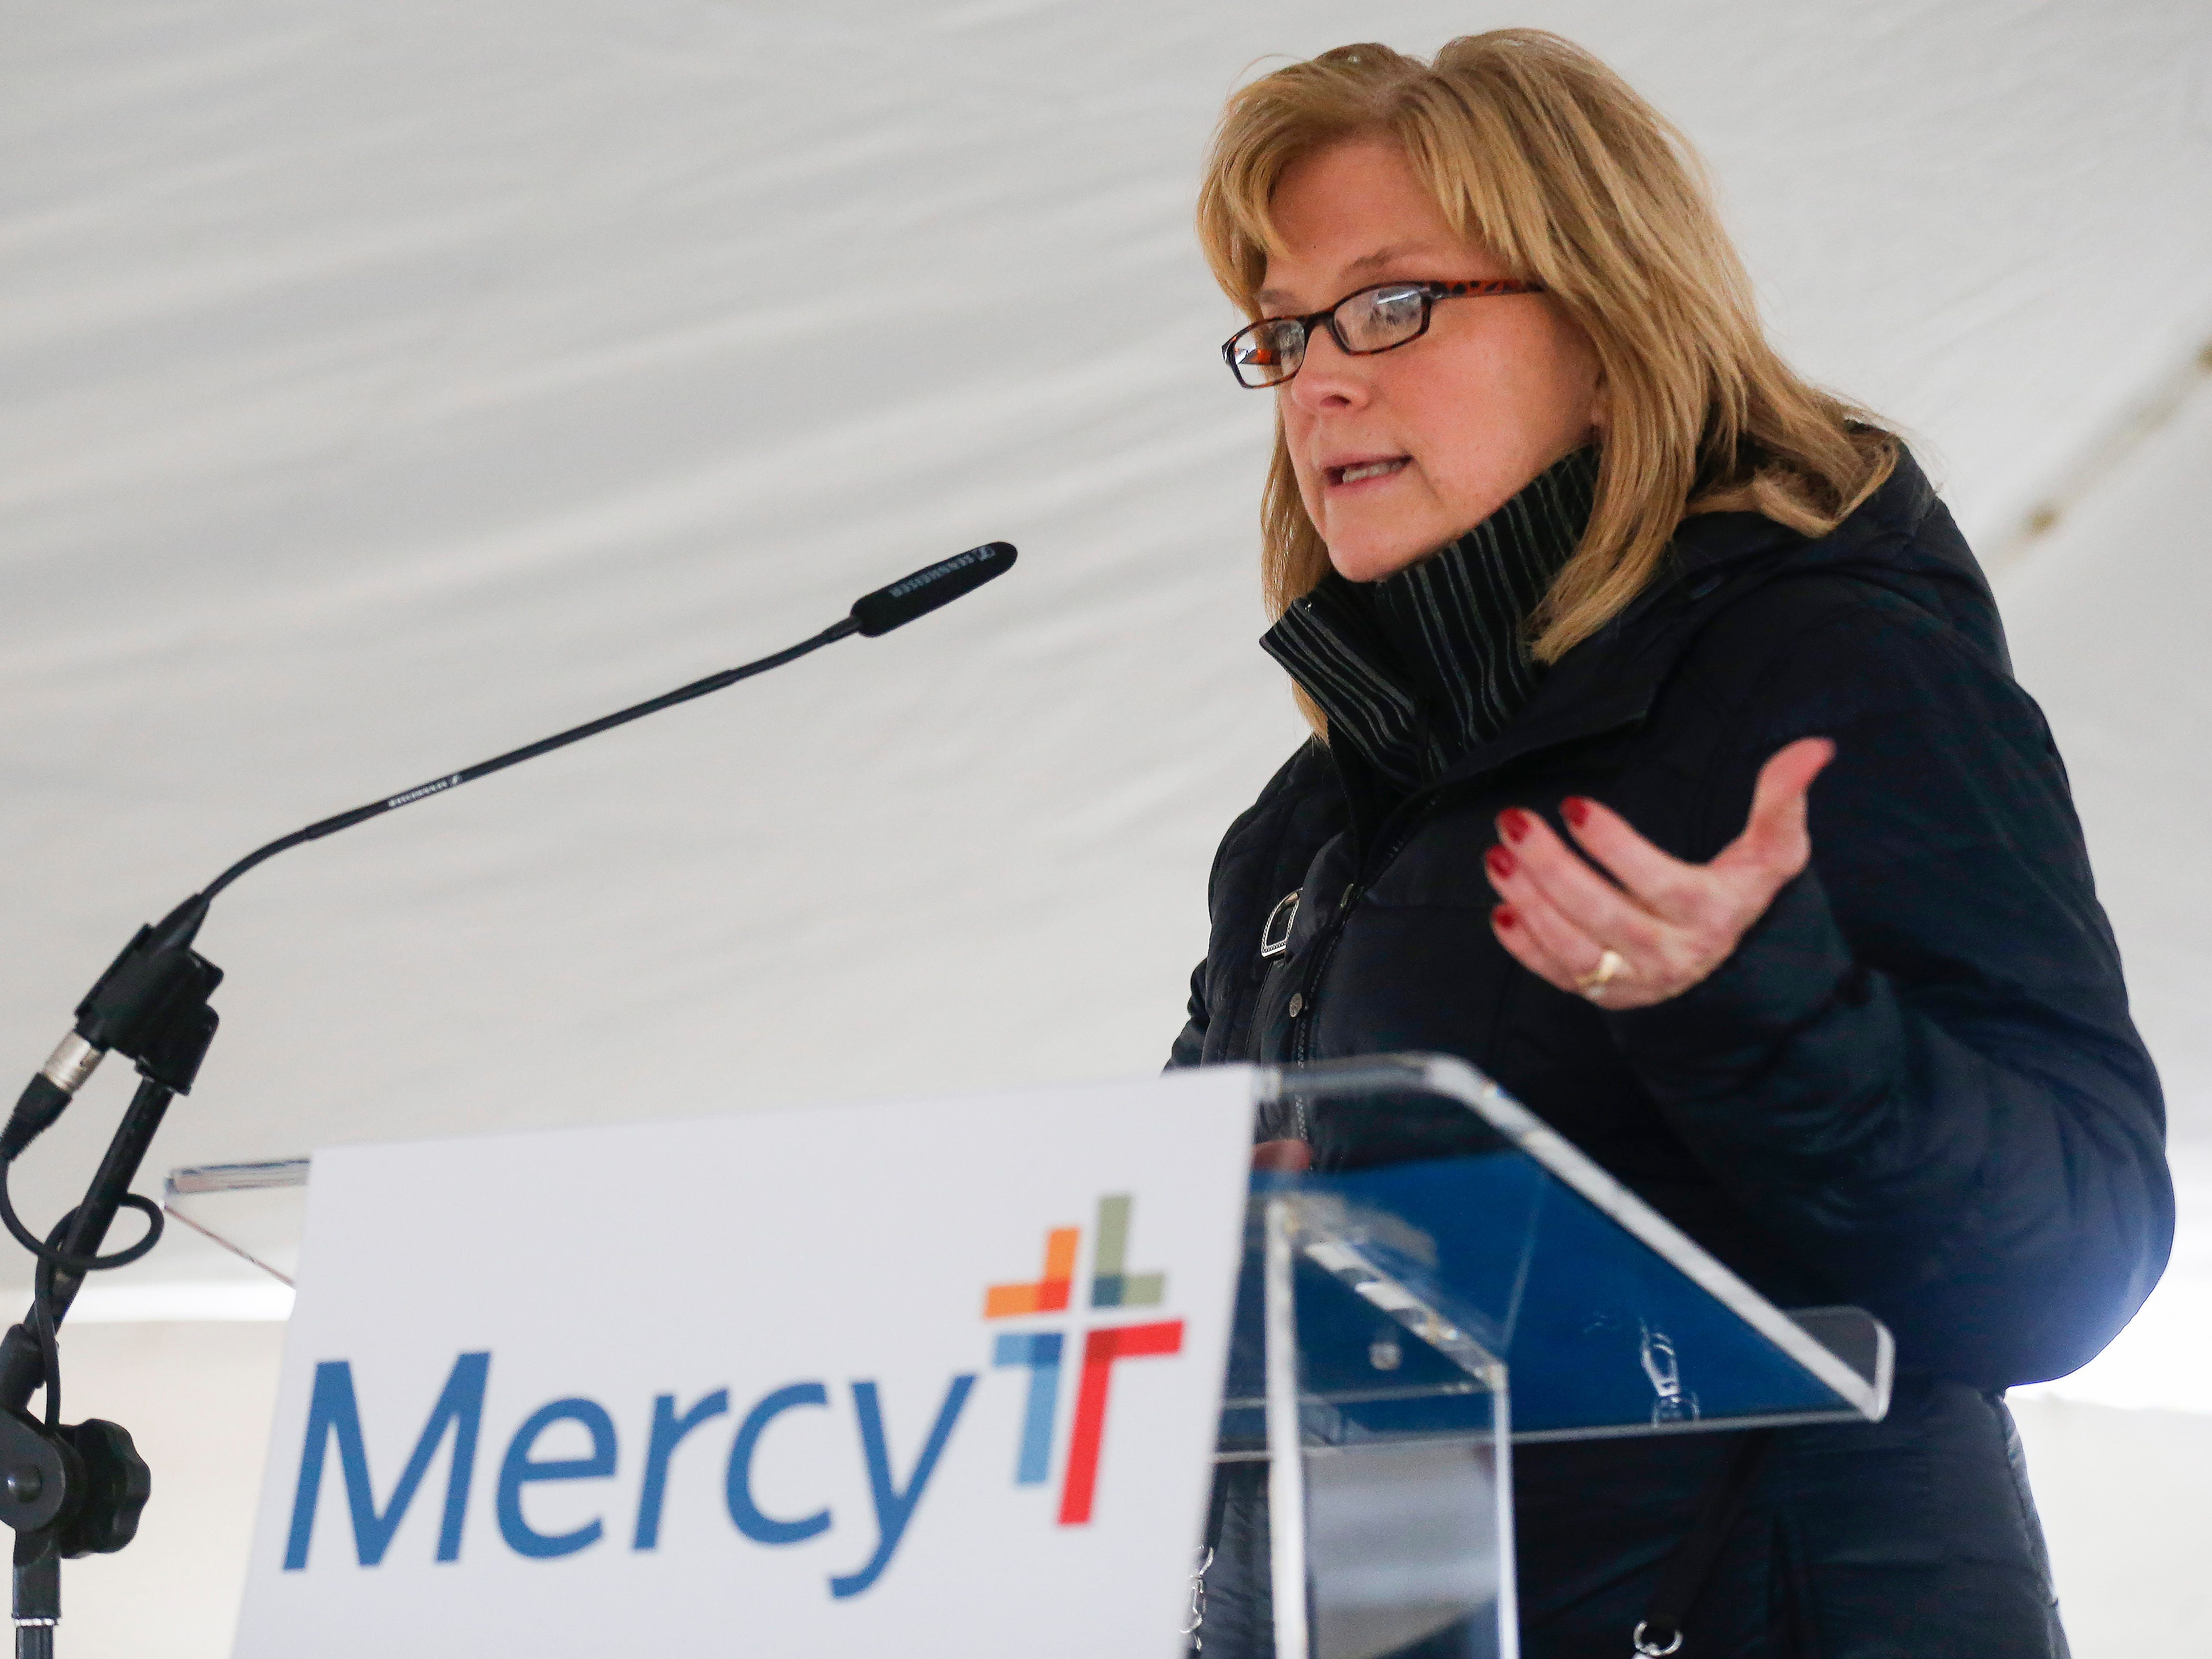 Dr. Jennifer McNay, vice president of primary care at Mercy, speaks during the groundbreaking and blessing for the new Mercy clinic which will be located at Republic Road and Scenic Avenue.